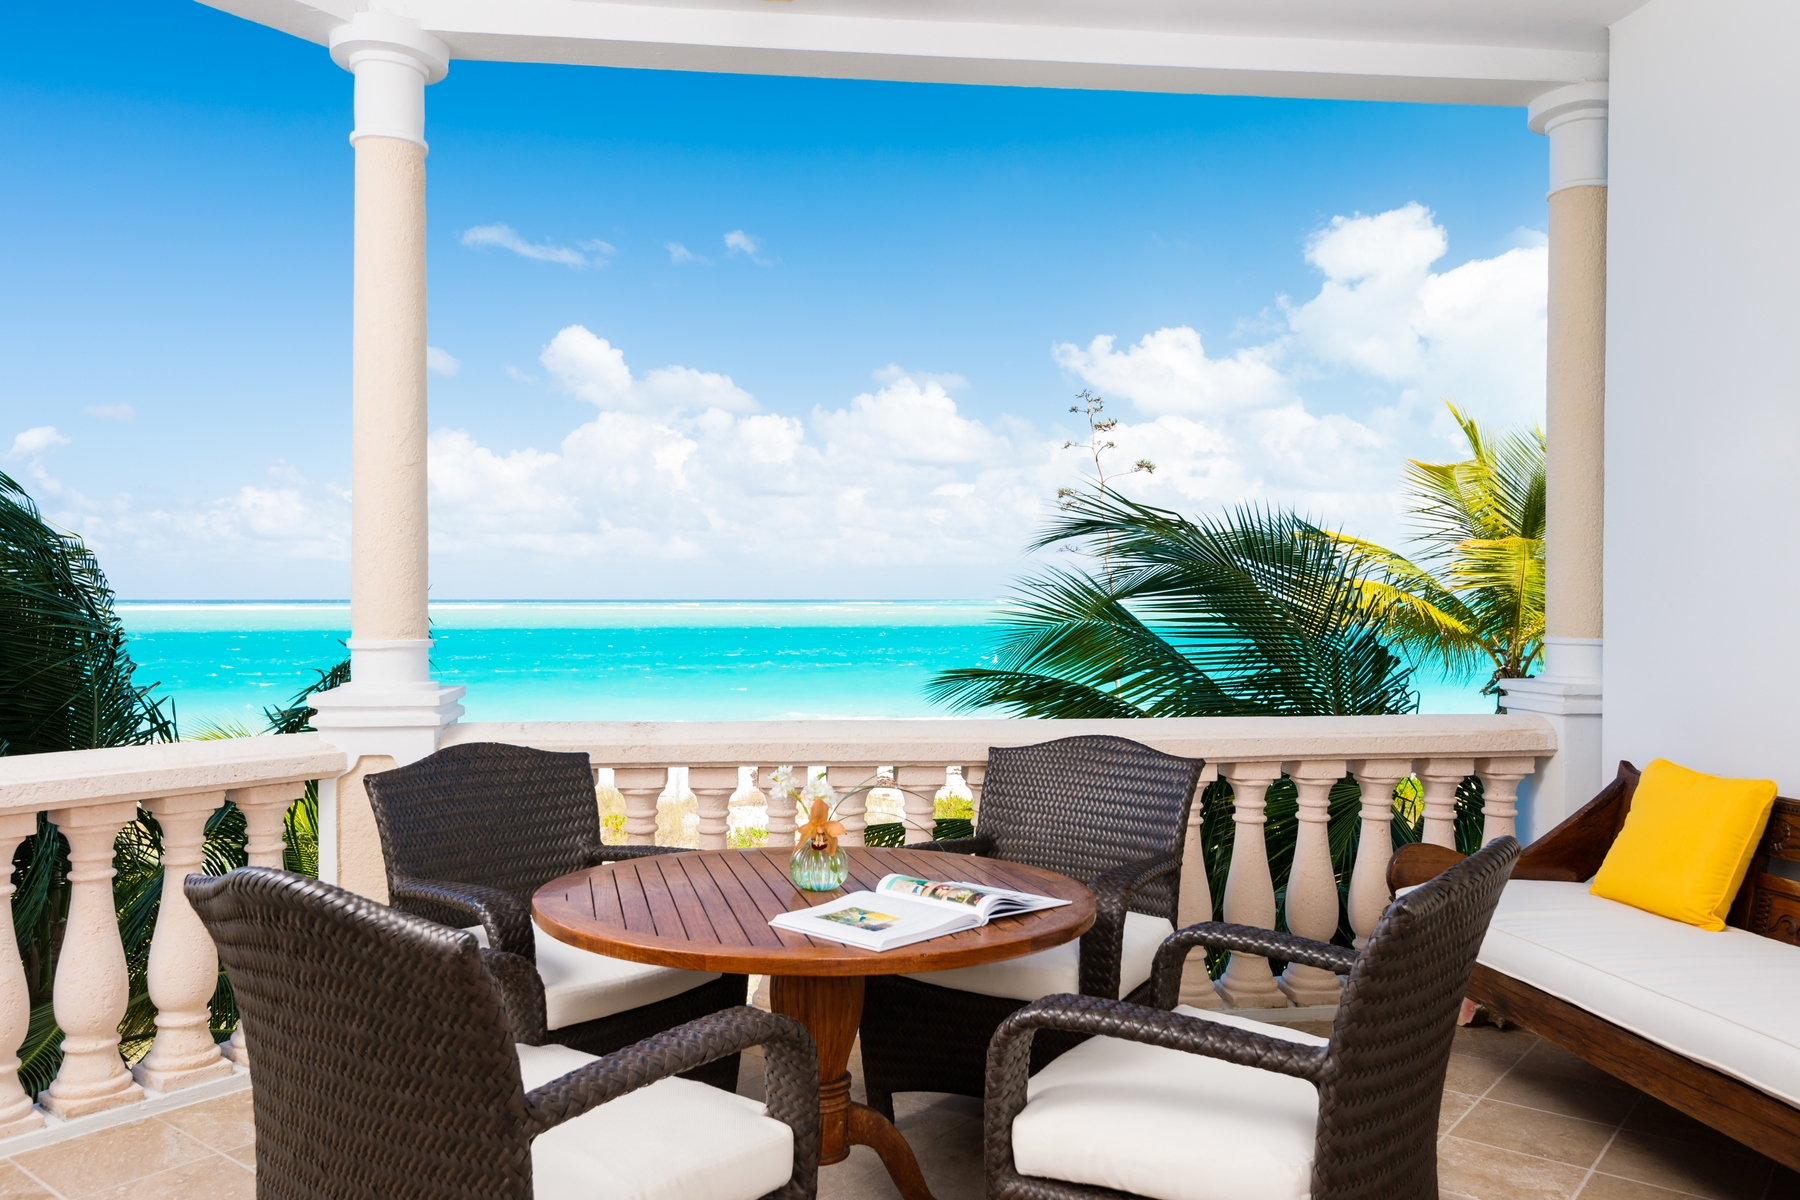 Condominium for Sale at Point Grace Suite E102 Oceanfront Grace Bay, Providenciales, TCI BWI Turks And Caicos Islands